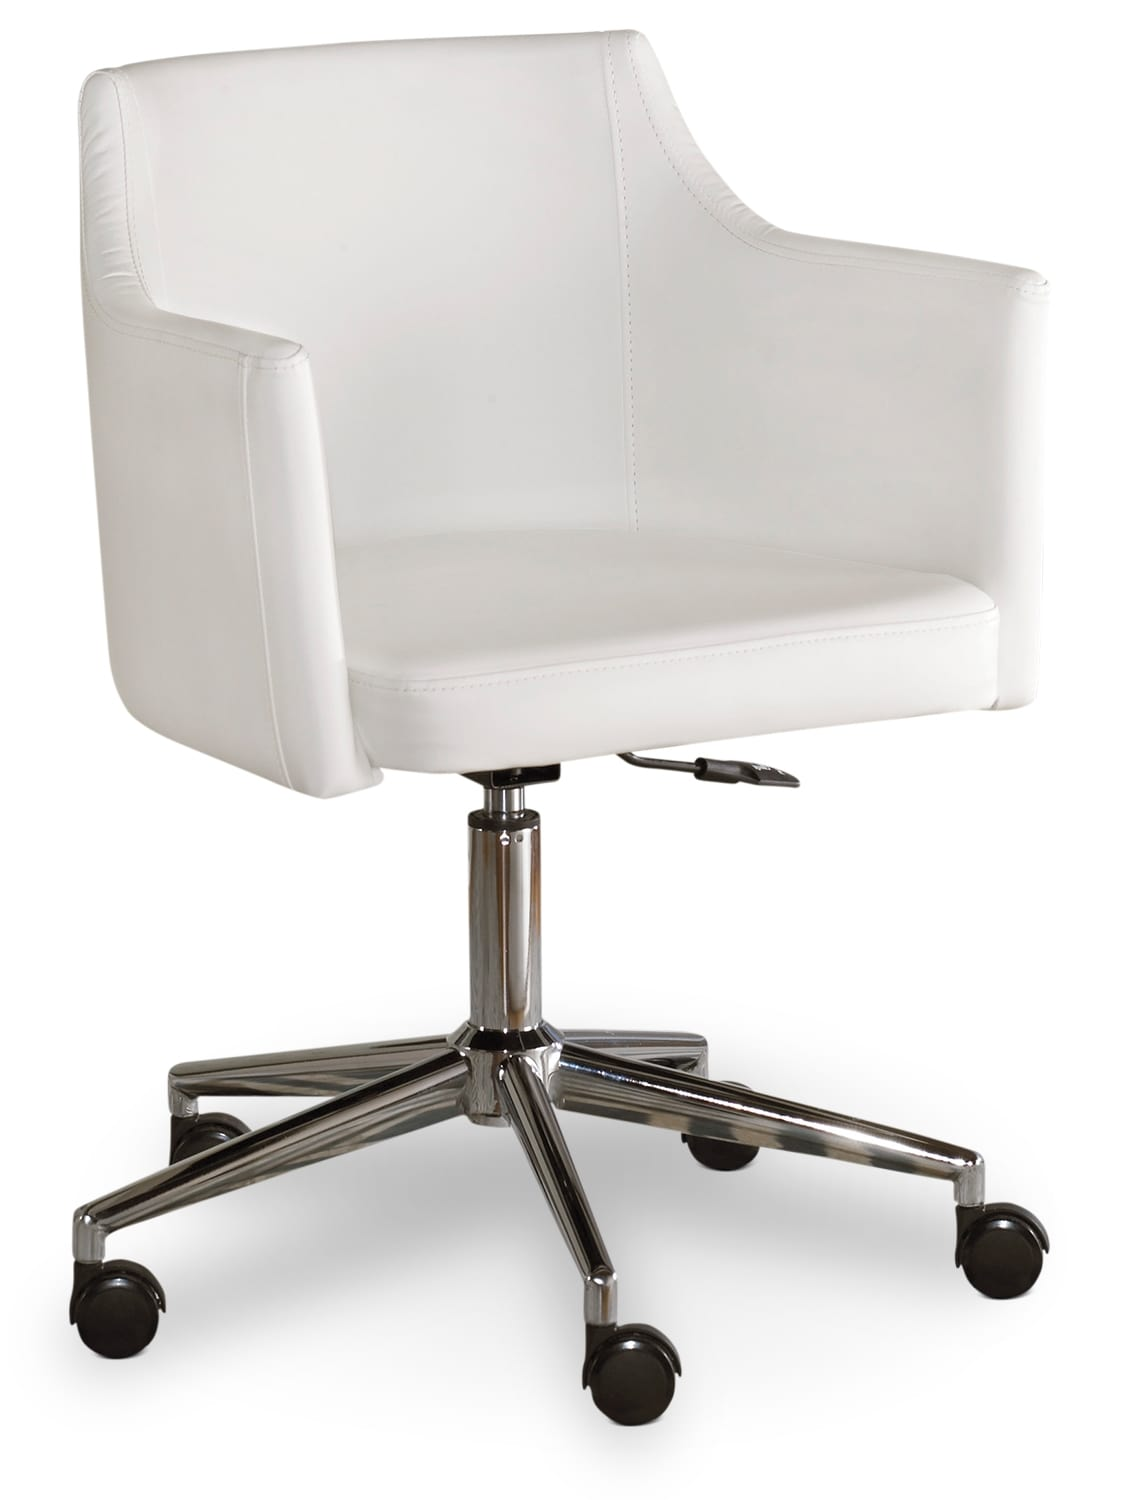 Home Office Furniture - Bexley Swivel Chair